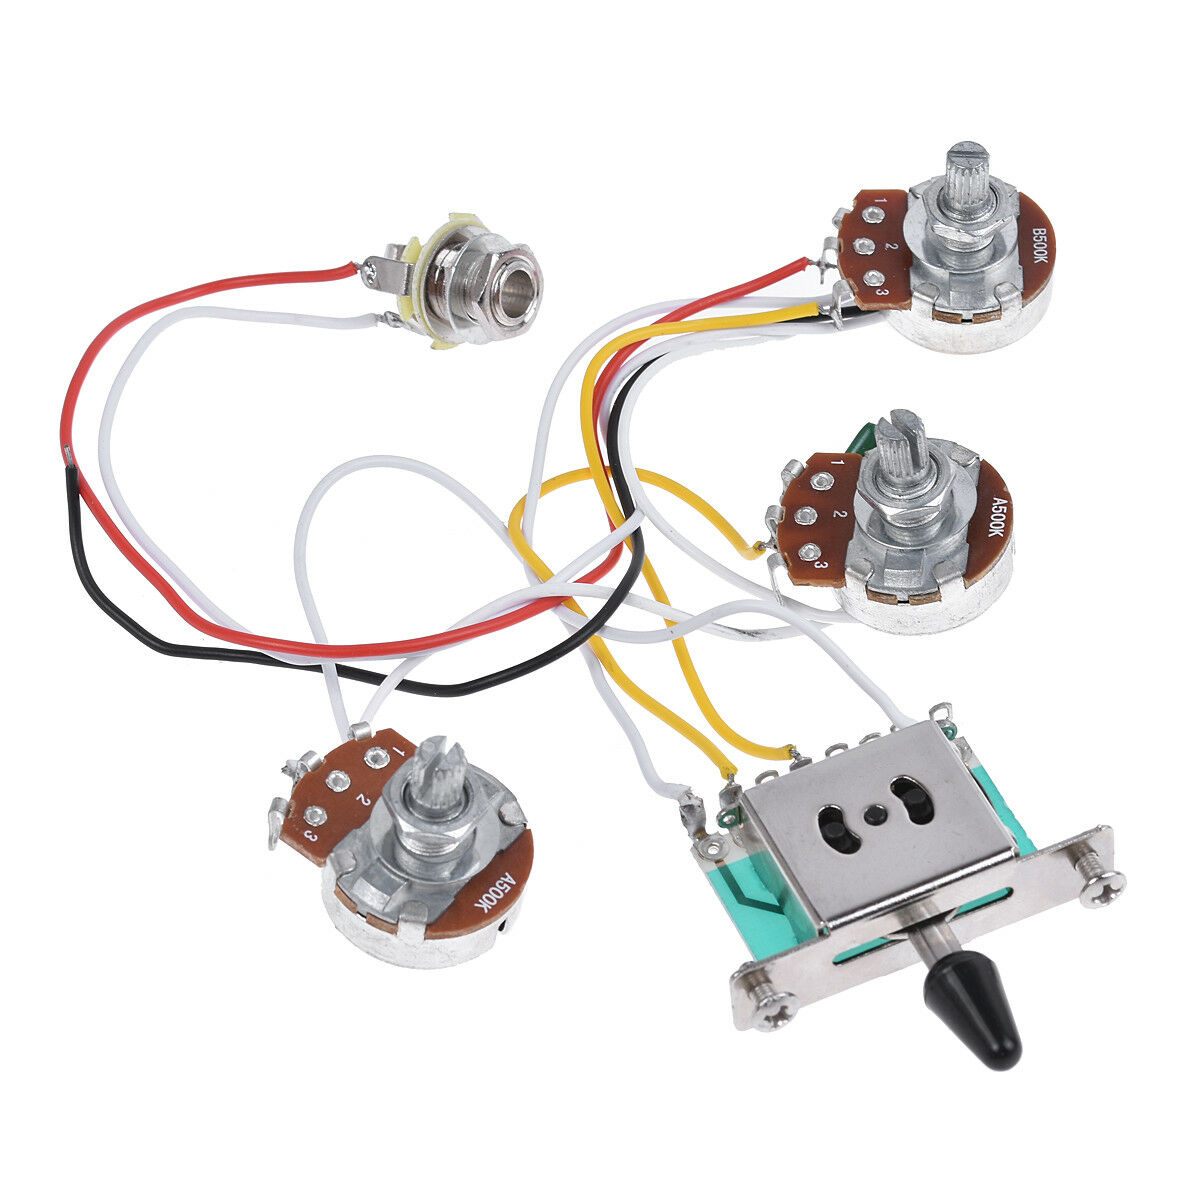 hight resolution of electric guitar wiring harness prewired kit for strat parts 5 way 500k pots 2t1v